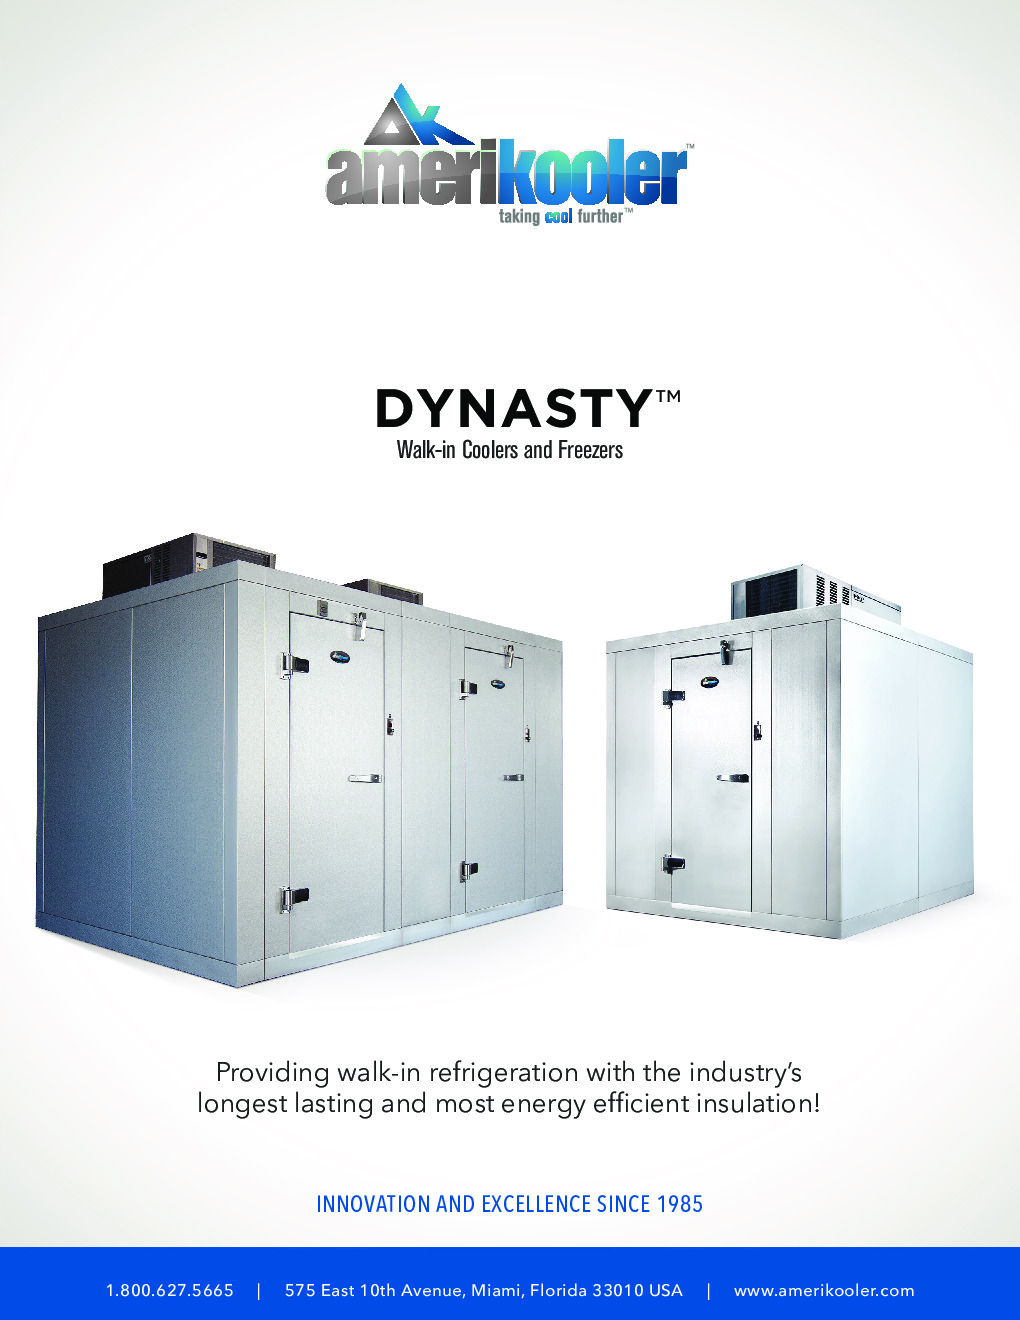 AmeriKooler DW101277F-5/7-RM 10' X 12' Walk-In Cooler, 7' L Cooler with Floor and 5' L Freezer, Remote